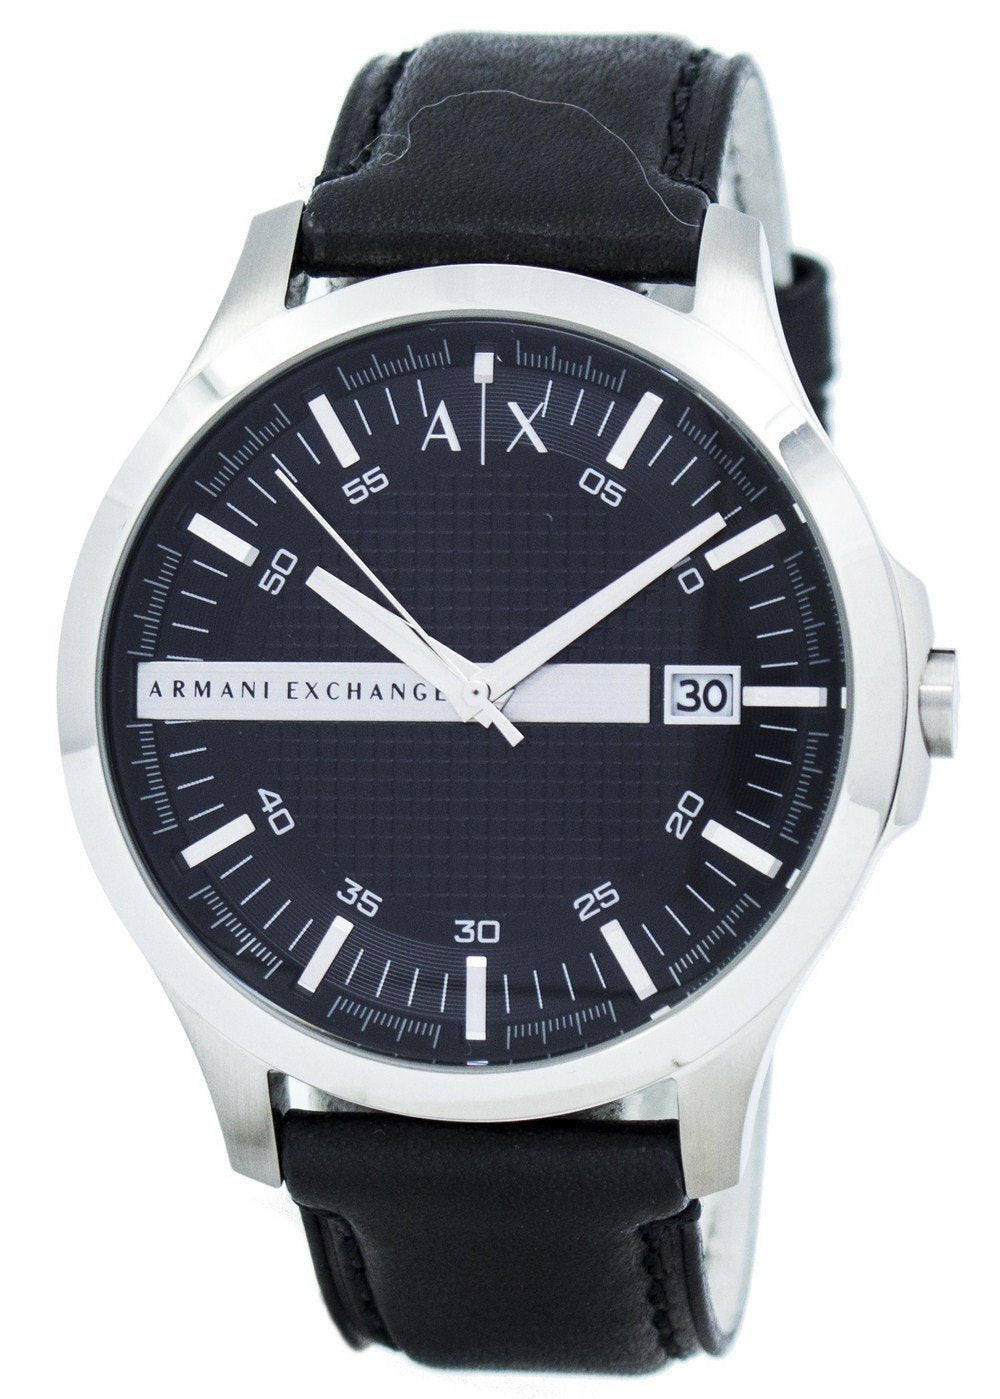 Armani Exchange Black Dial Leather Strap AX2101 Men's Watch, best prices, cheapest, discount, new, Cruze Watches